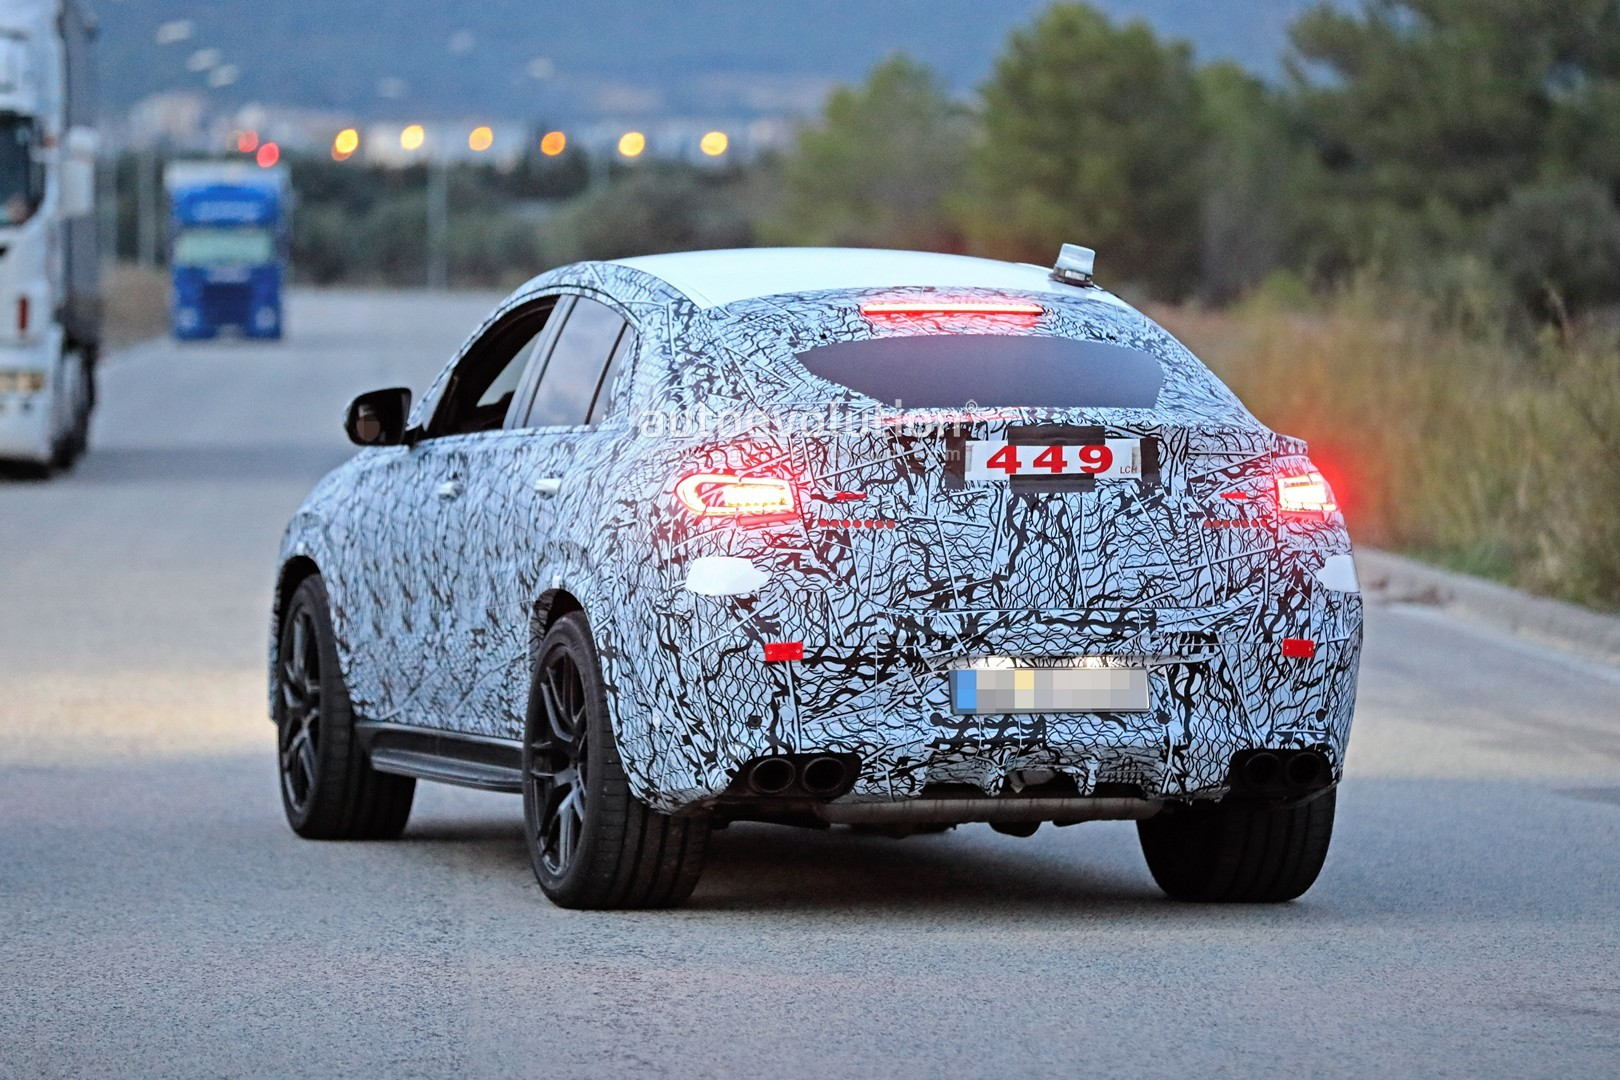 mercedes-a​mg-gle-53-​coupe-make​s-spyshot-​debut-with​-quad-exha​ust-tips_1